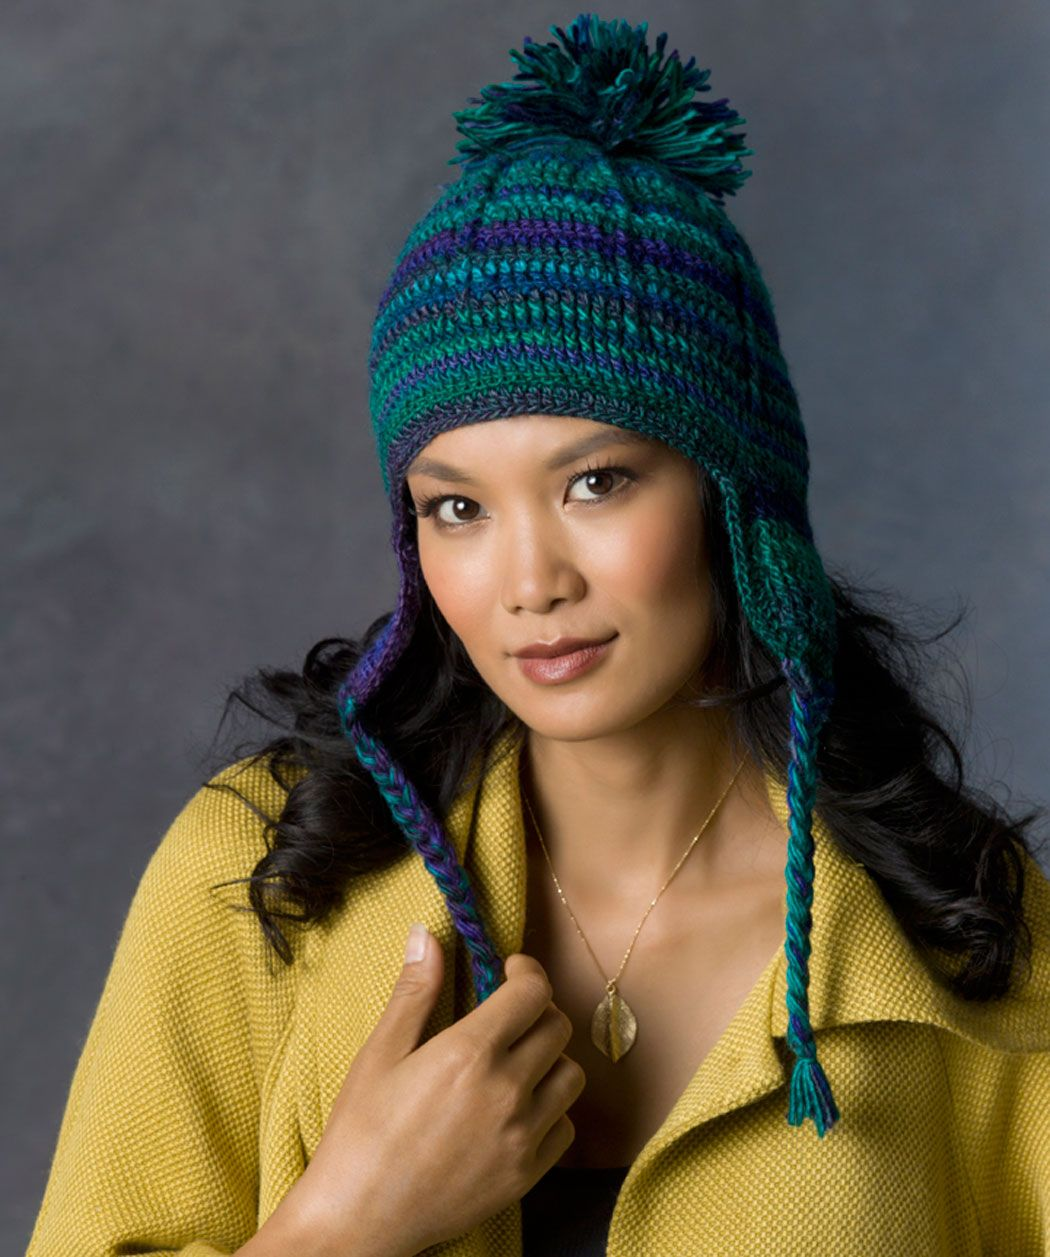 The amazing colors of this shaded yarn make it look like a wool hat ...